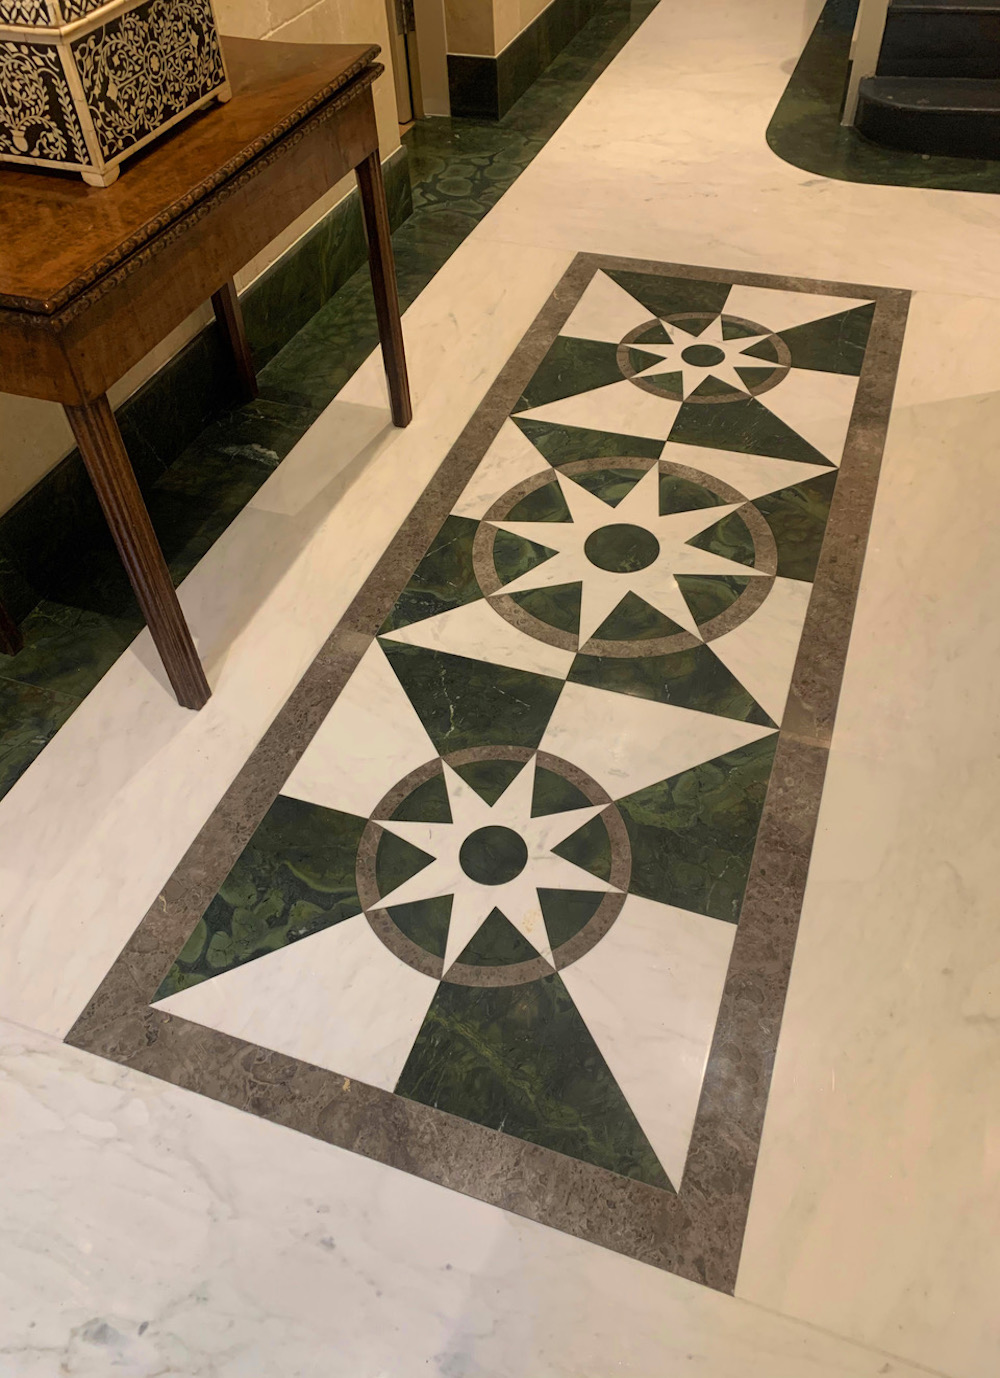 Image caption: The polished marble and quartzite floor is finished and polished, and incorporates a water-jet cut central panel design with a relatively traditional orientation, with a nod to mapping imagery as point of reference.